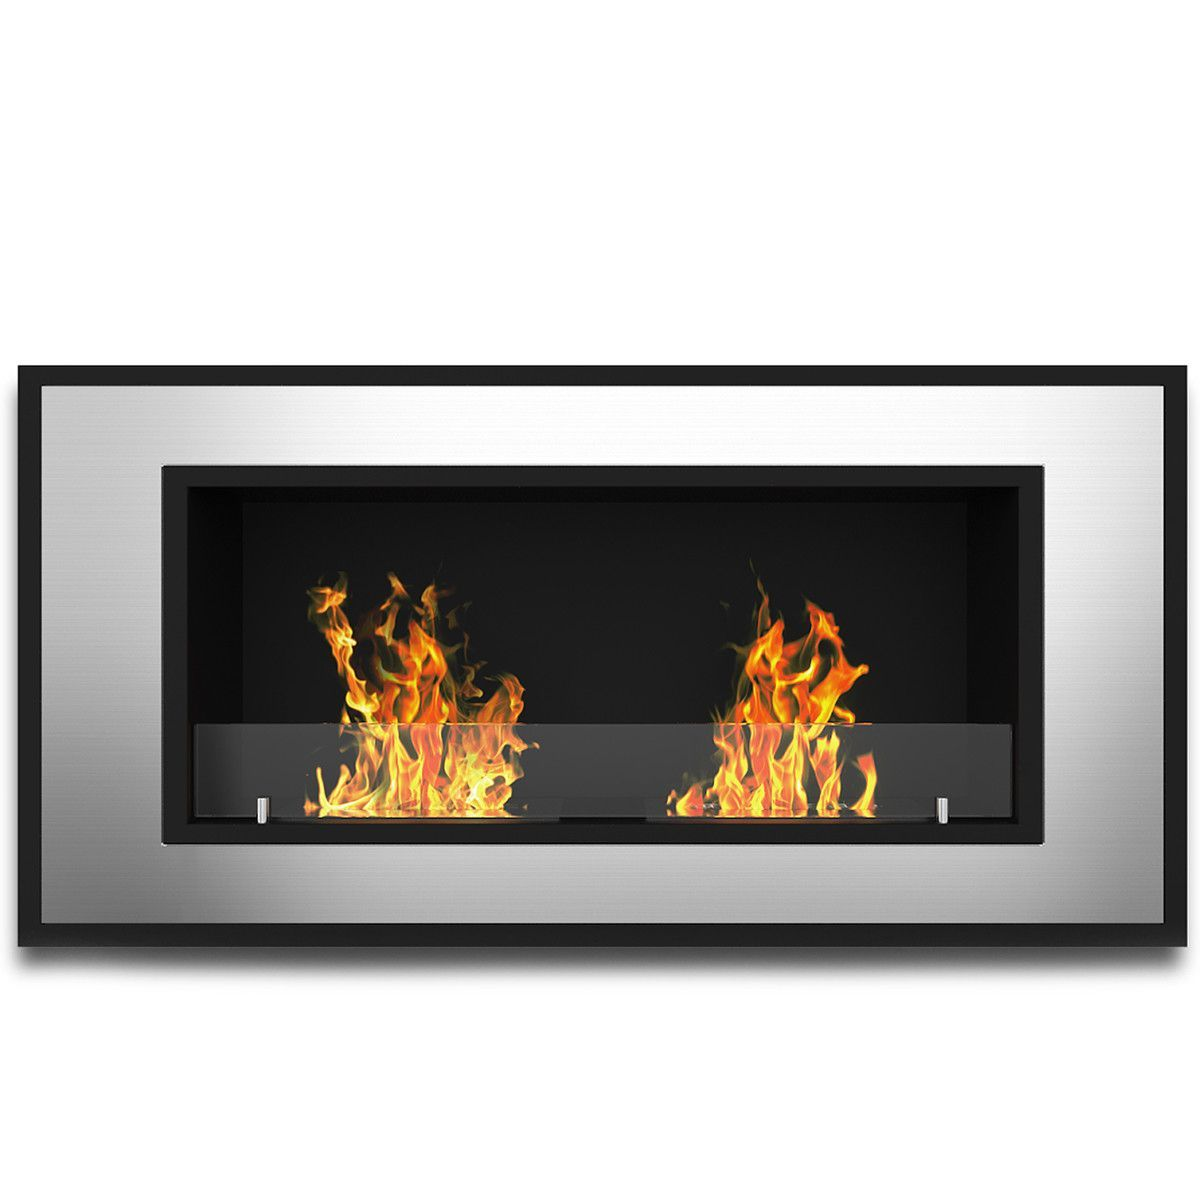 tulsa ventless recessed or wall mounted bio ethanol fuel fireplace